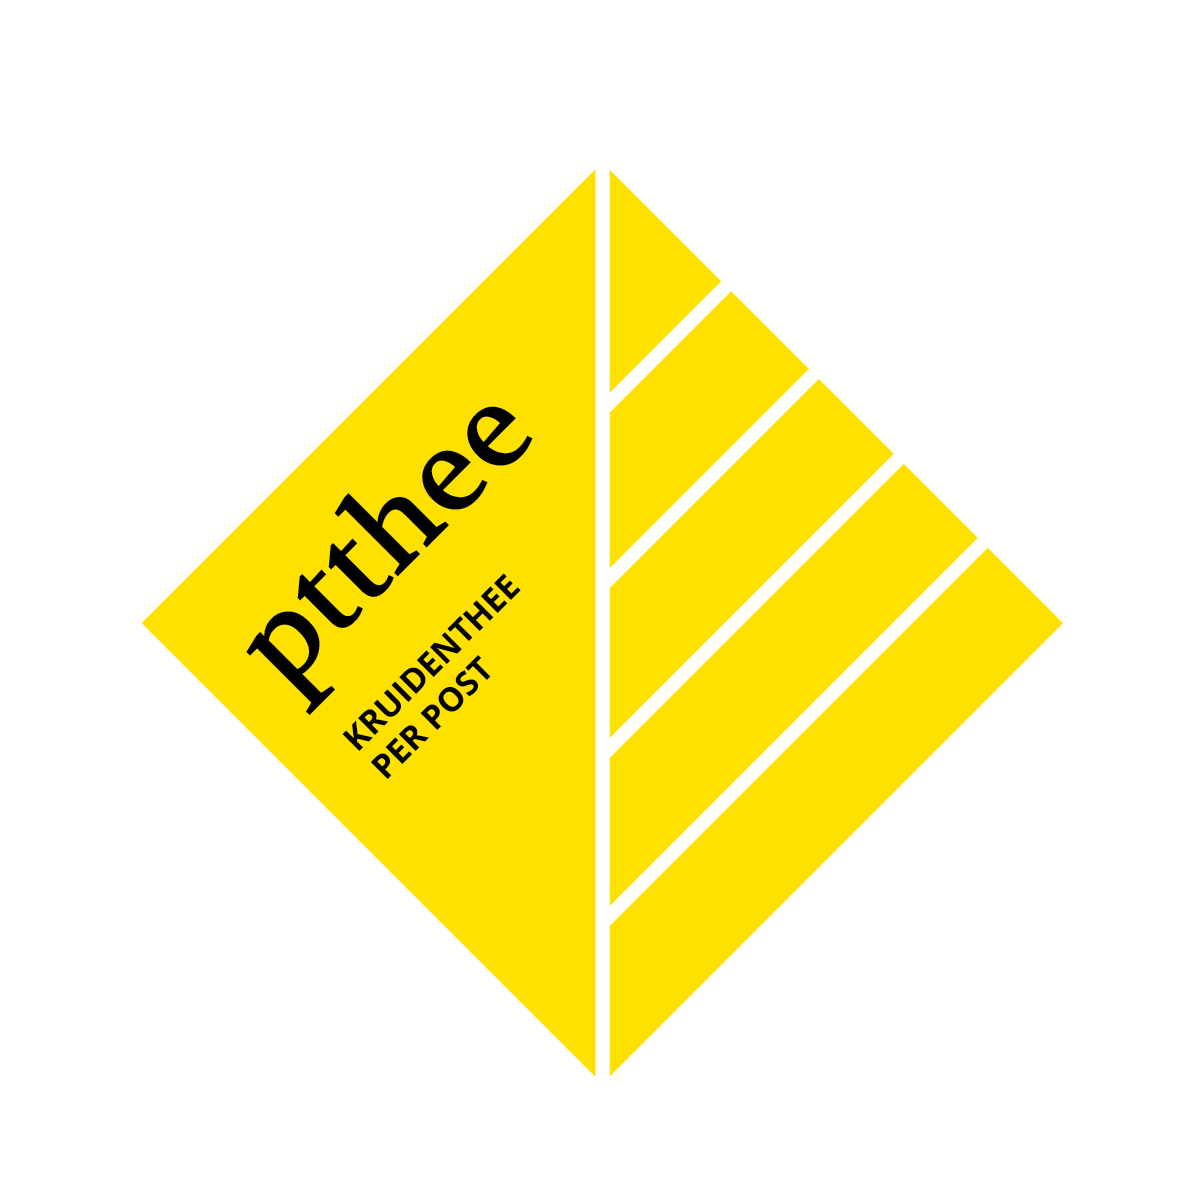 Spread the seed: ptthee